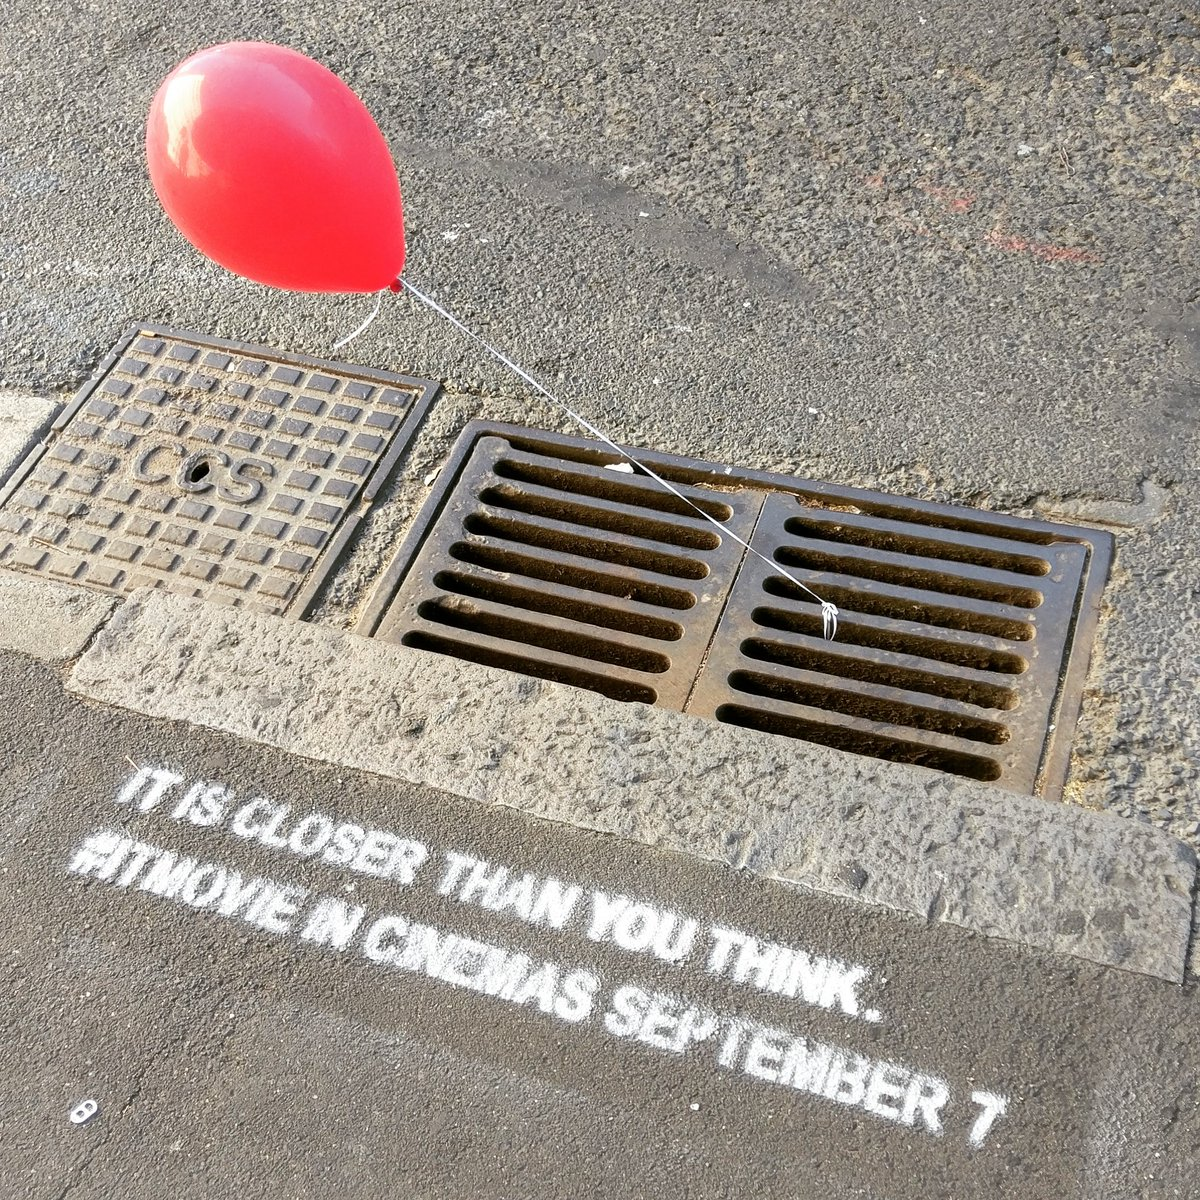 Creepy 'It' stunt sees red balloons appear in drains across Sydney